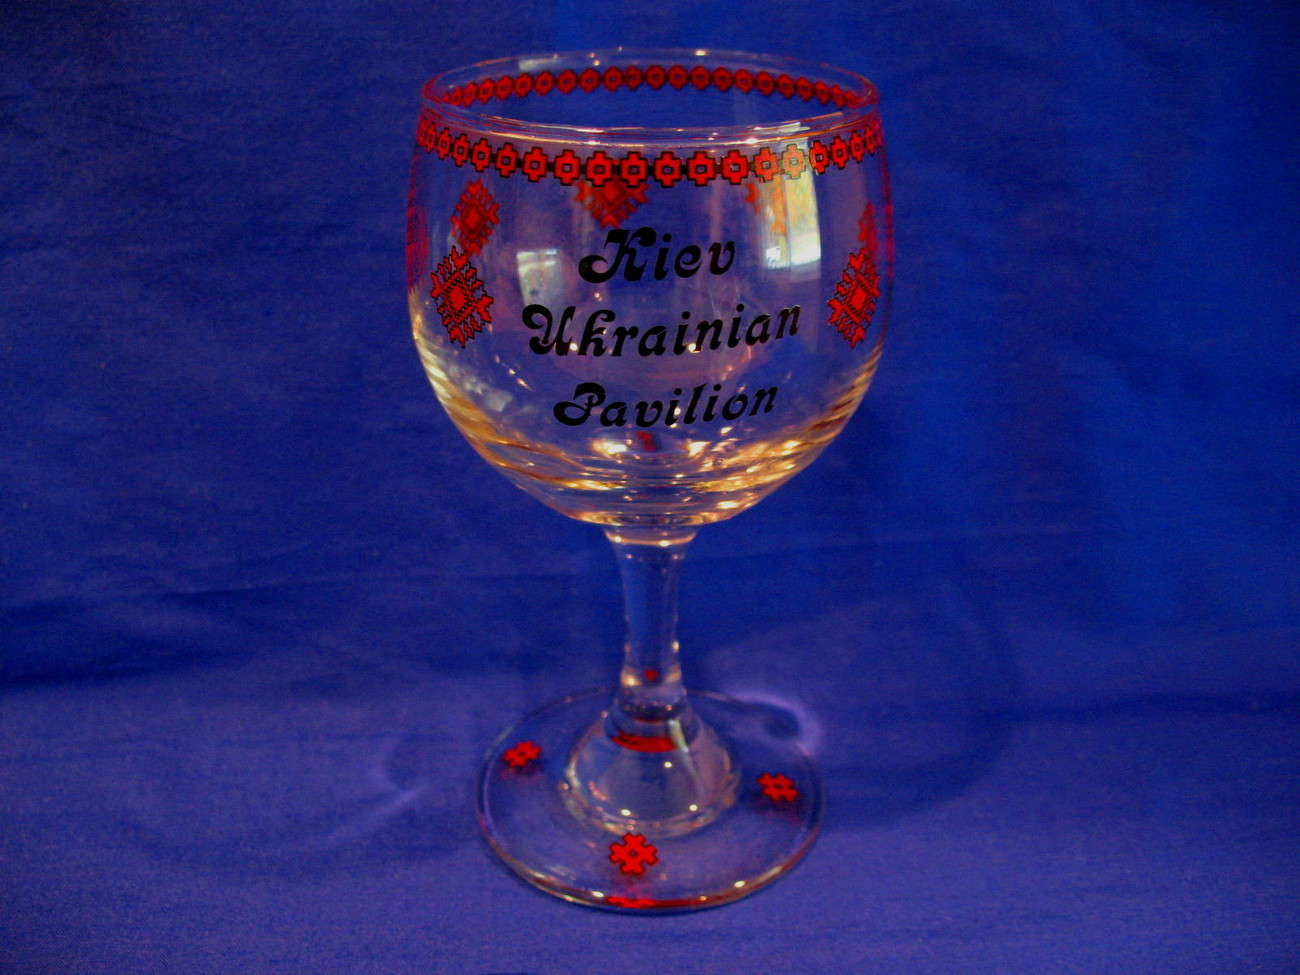 Kiev Ukrainian Pavilion Stemmed Glass Vintage Collector Souvenir Ukraine Glass